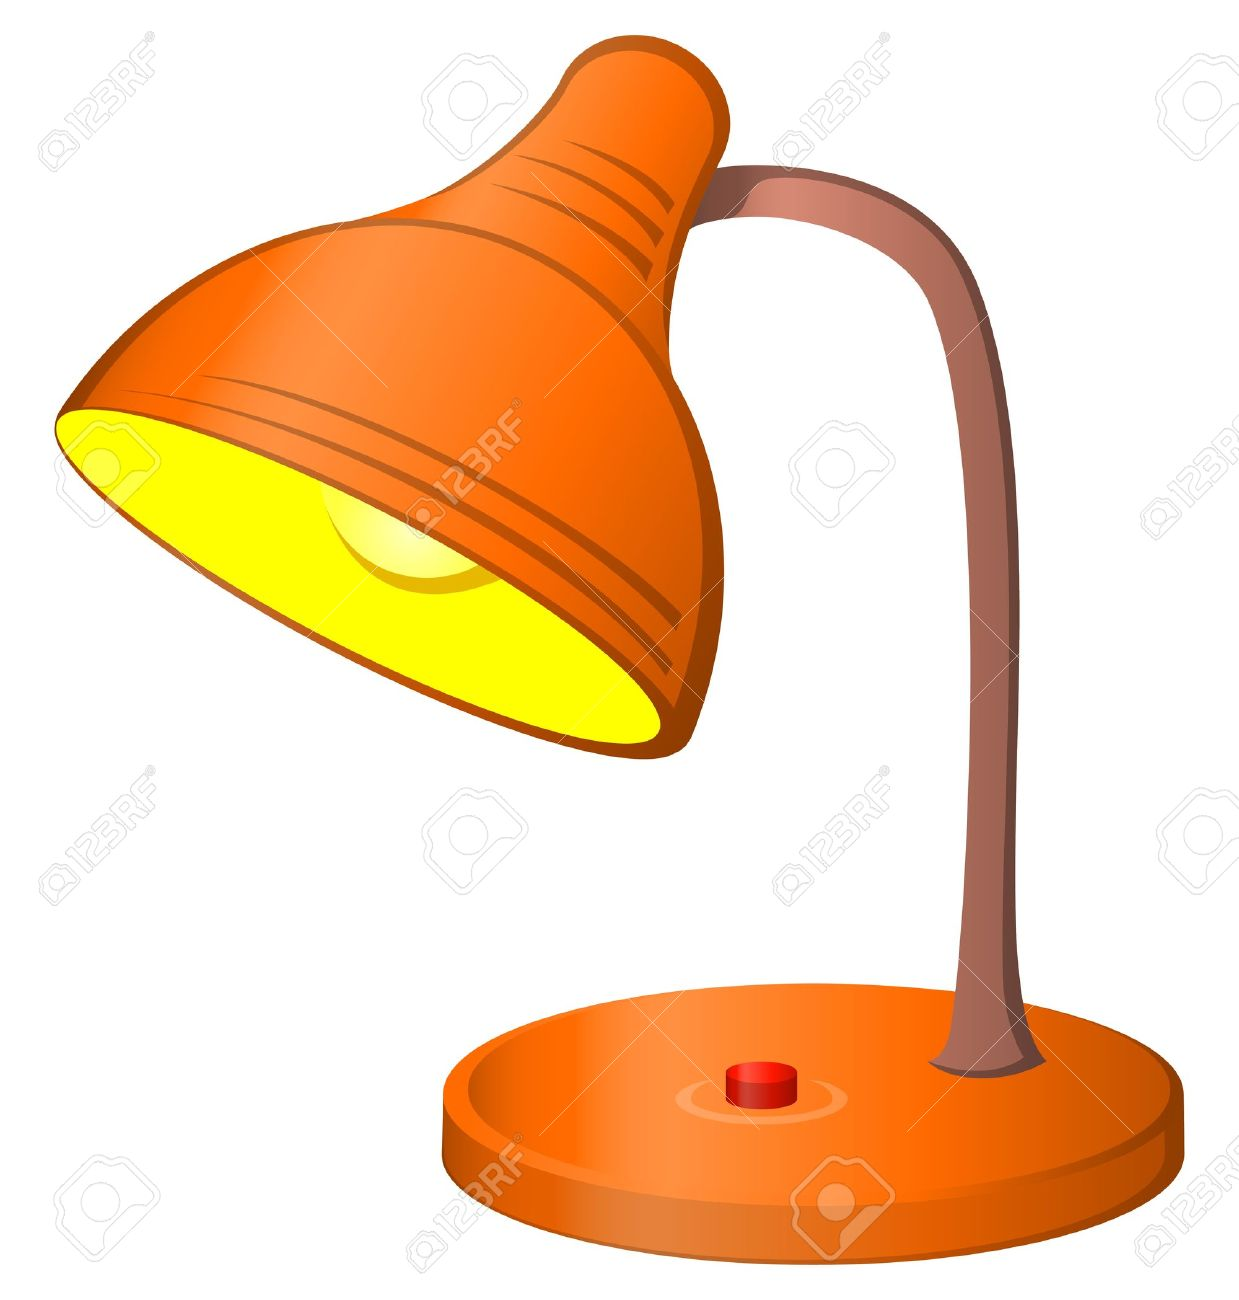 Lamp clipart free clipart royalty free Lamp Clipart | Free download best Lamp Clipart on ClipArtMag.com clipart royalty free